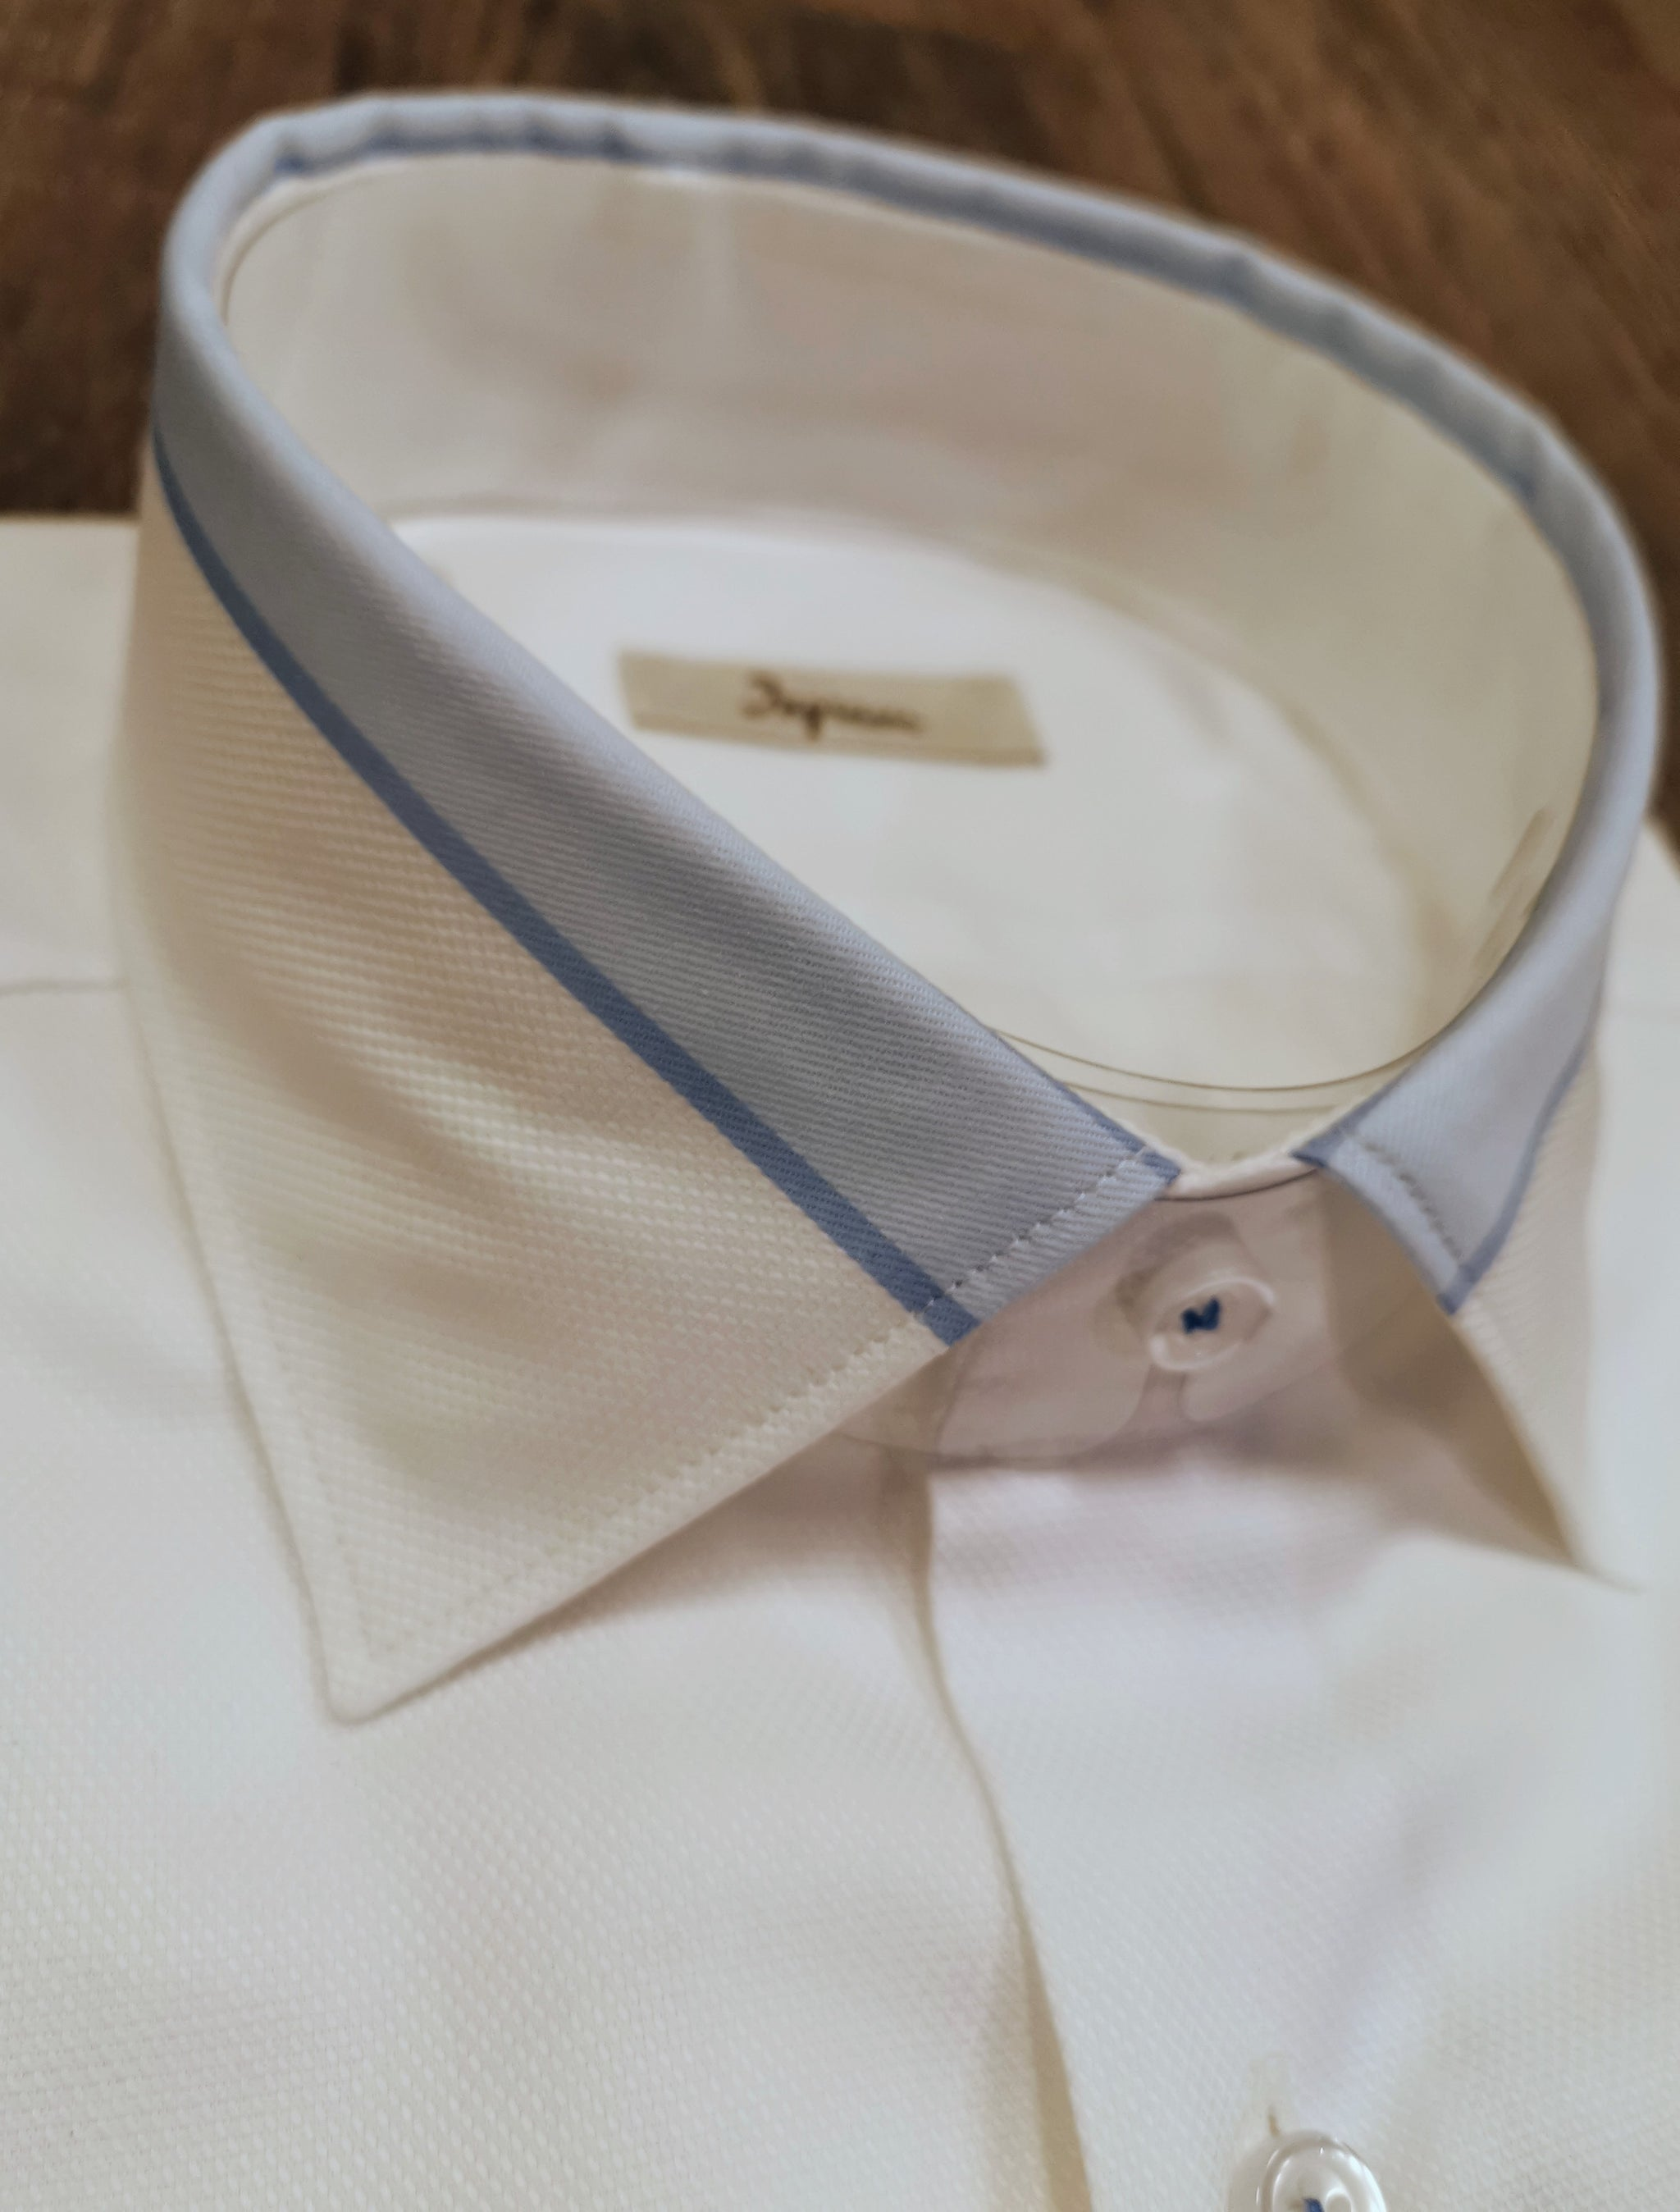 Ingram Regular fit, White shirt with blue-collar trim